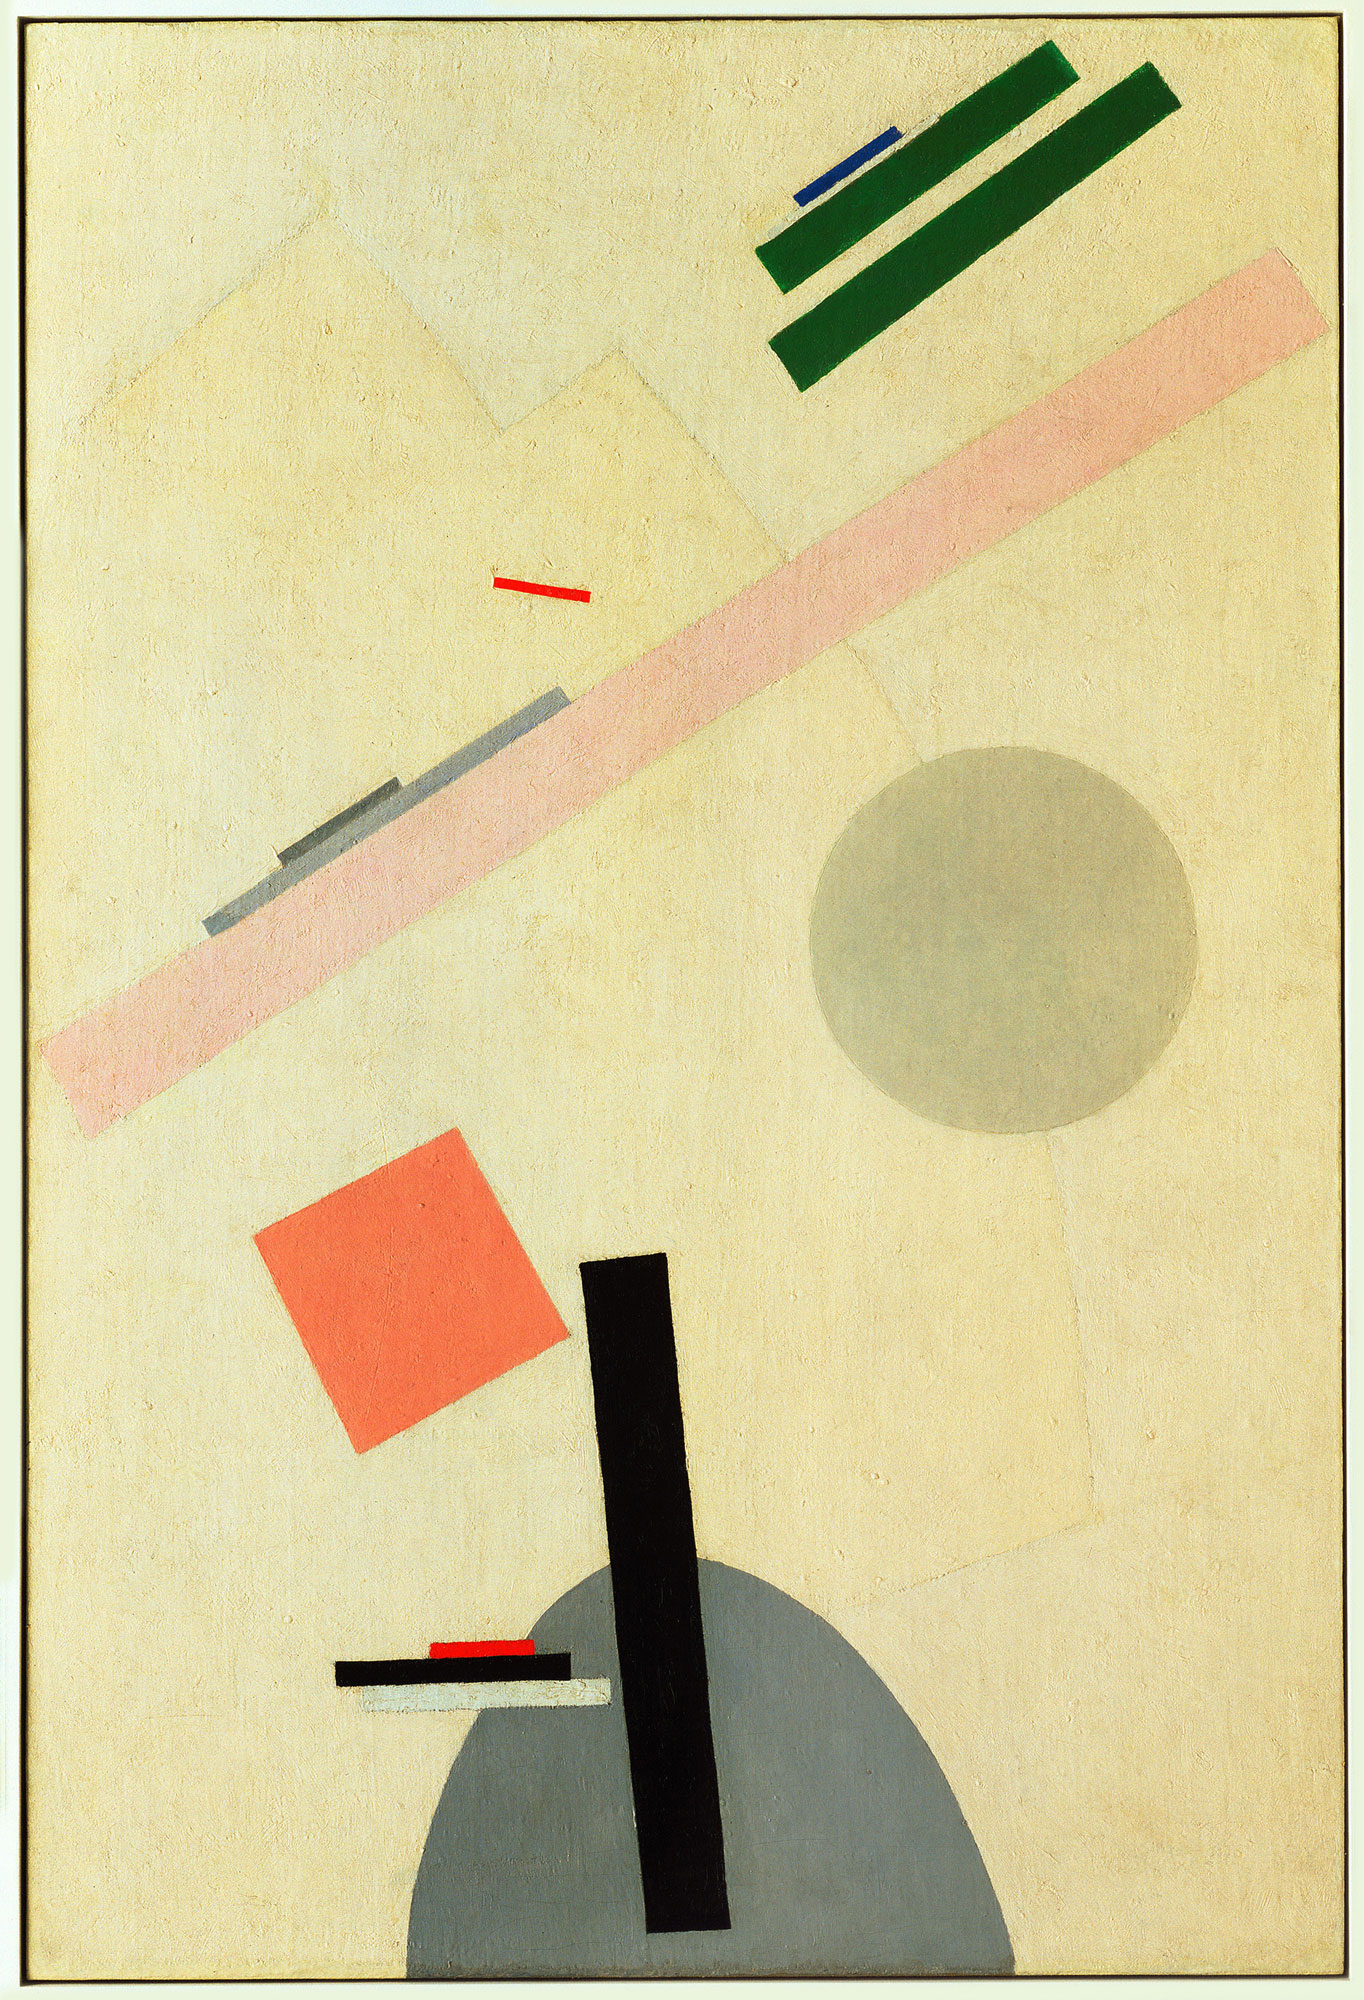 """Kazimir Malevich, """"Suprematist Painting"""", 1916-17, oil on canvas, courtesy of Museum of Modern Art. (MoMA), New York"""